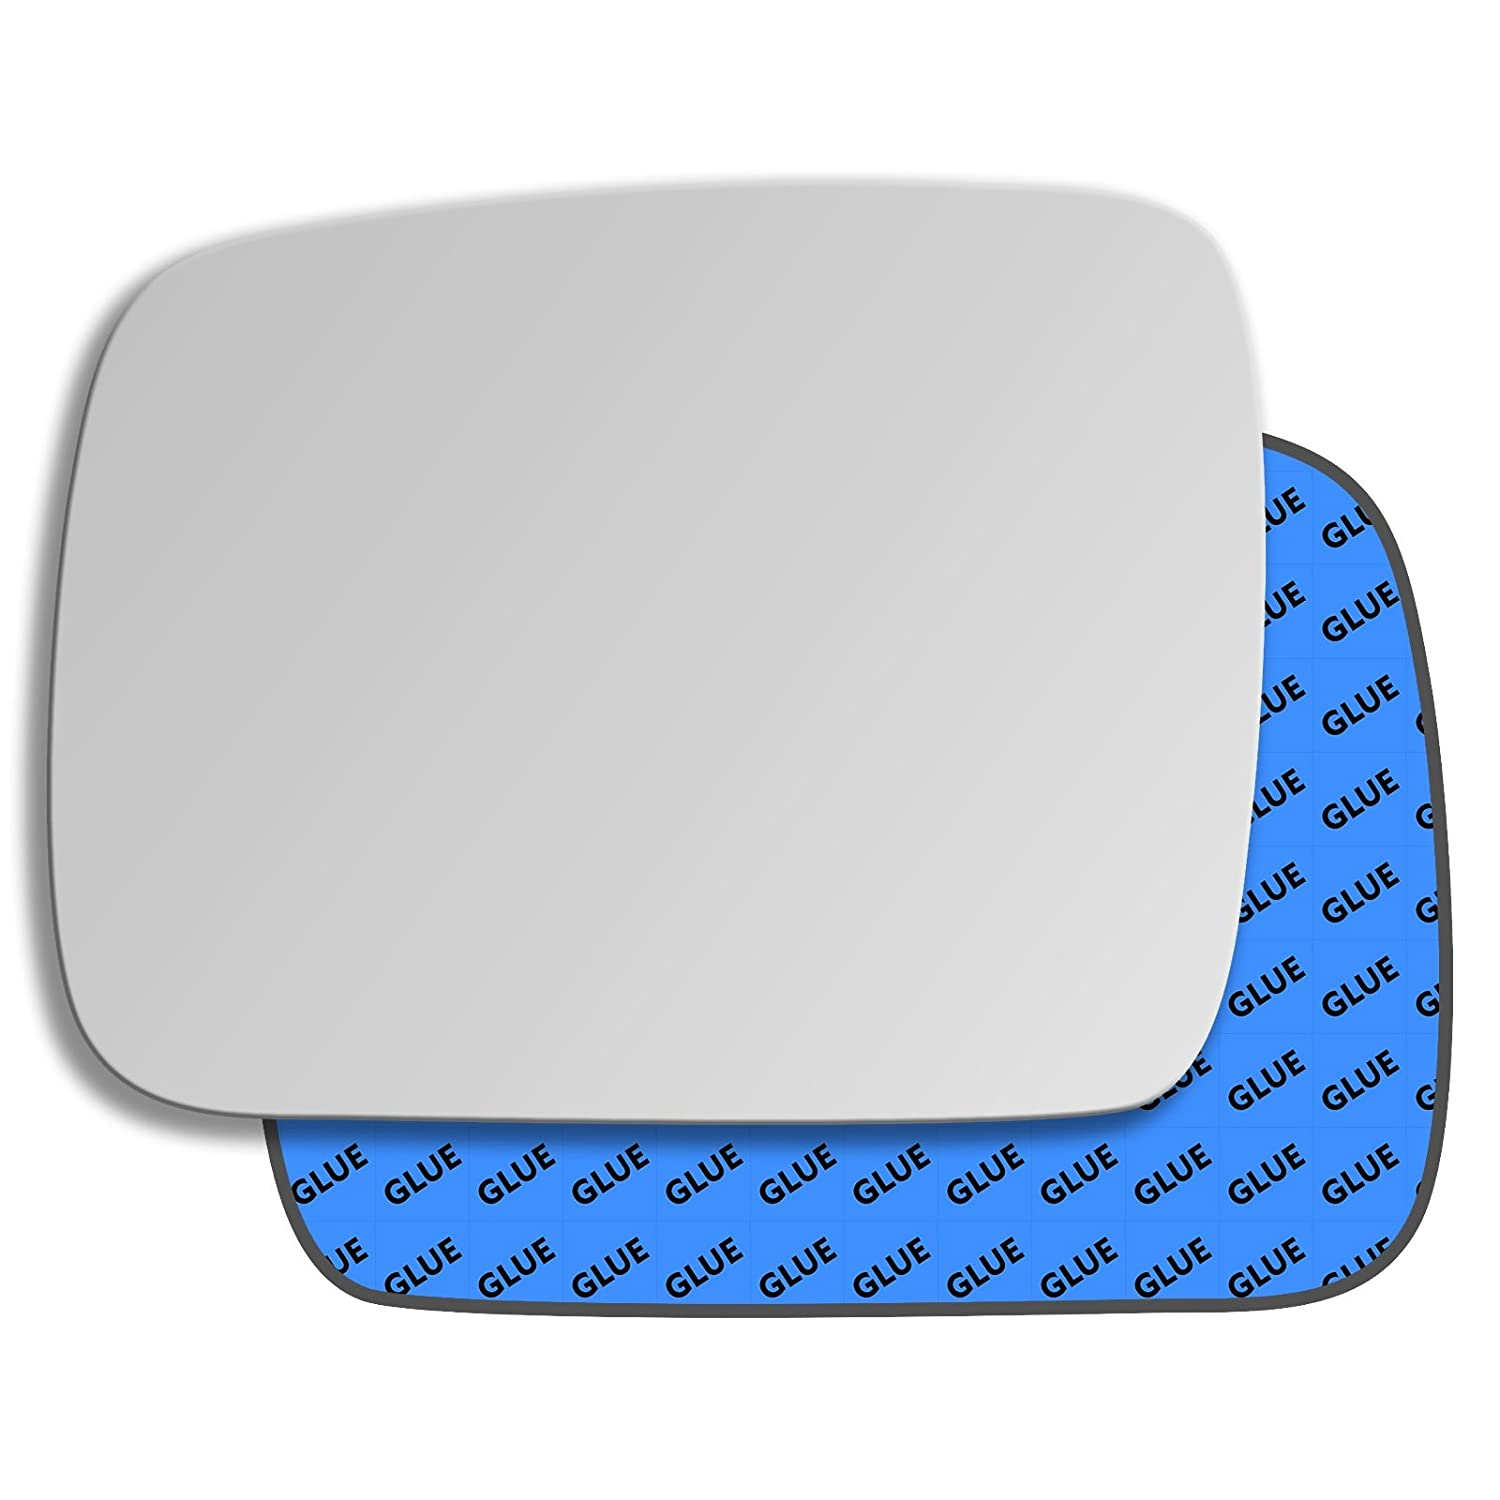 Hightecpl 792LS Left Passenger Side Convex Door Wing Mirror Glass Channel Autoparts Limited